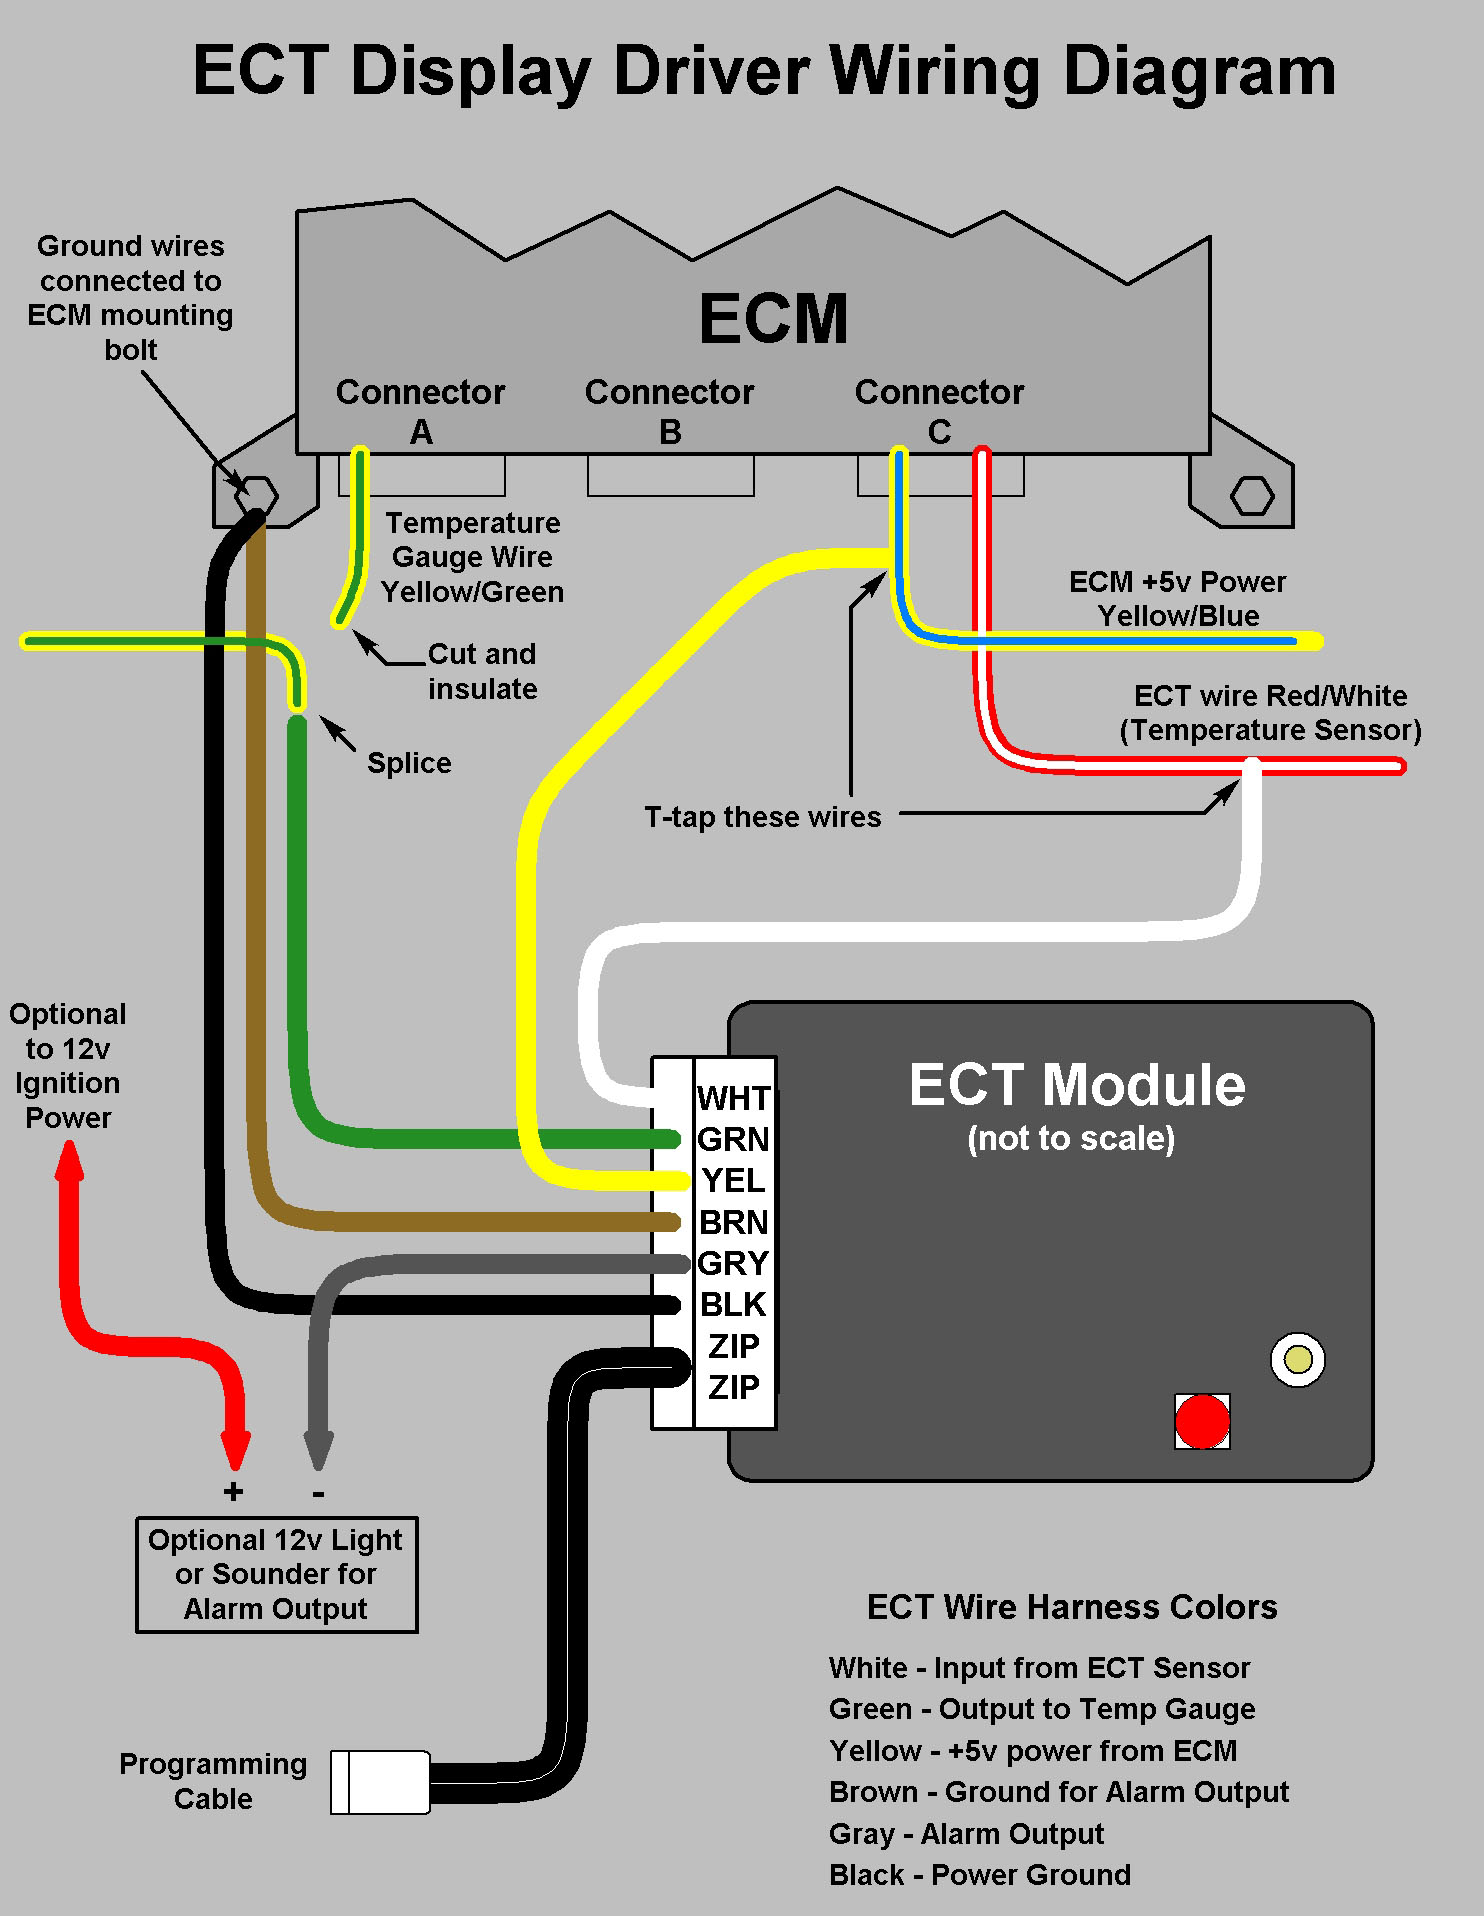 ECT wiring diagram ems wiring diagram management system \u2022 wiring diagrams j squared co aem ems 4 wiring diagram at gsmportal.co